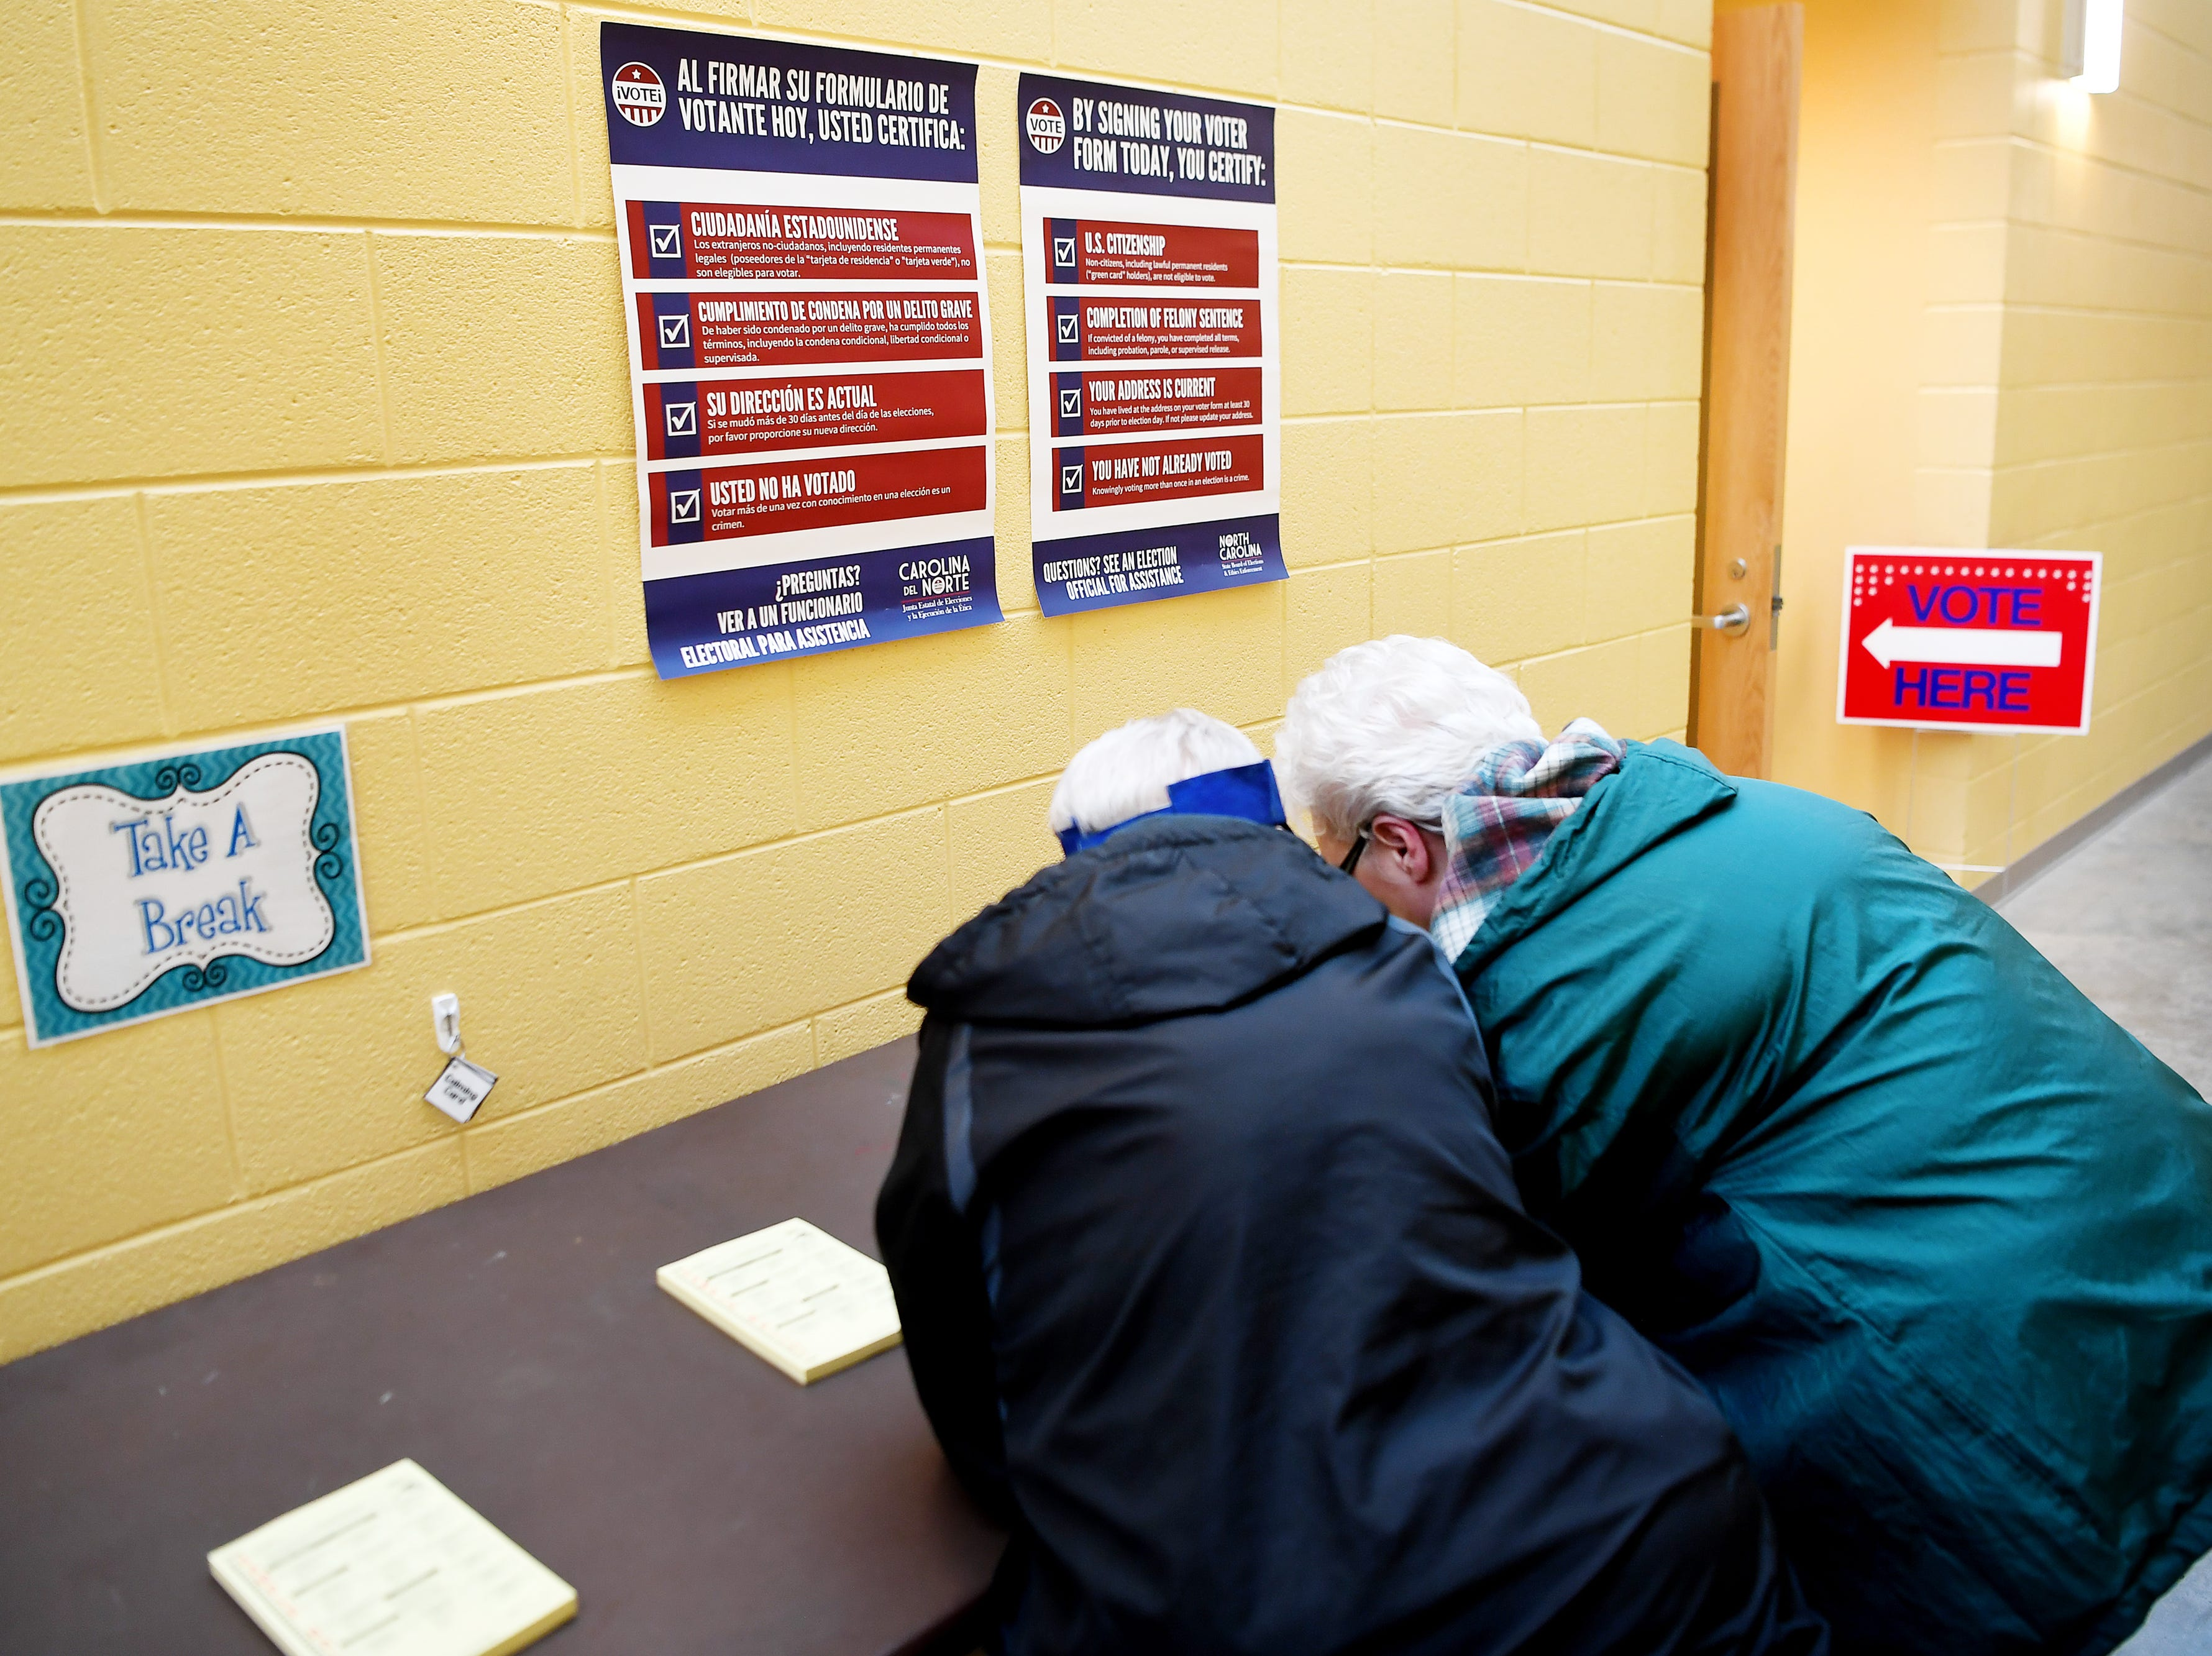 Vinnie Whitted, left, and Ann Whitner huddle together as they examine at sample ballot before casting their vote at the Dr. Wesley Grant Southside Center Nov. 6, 2018.